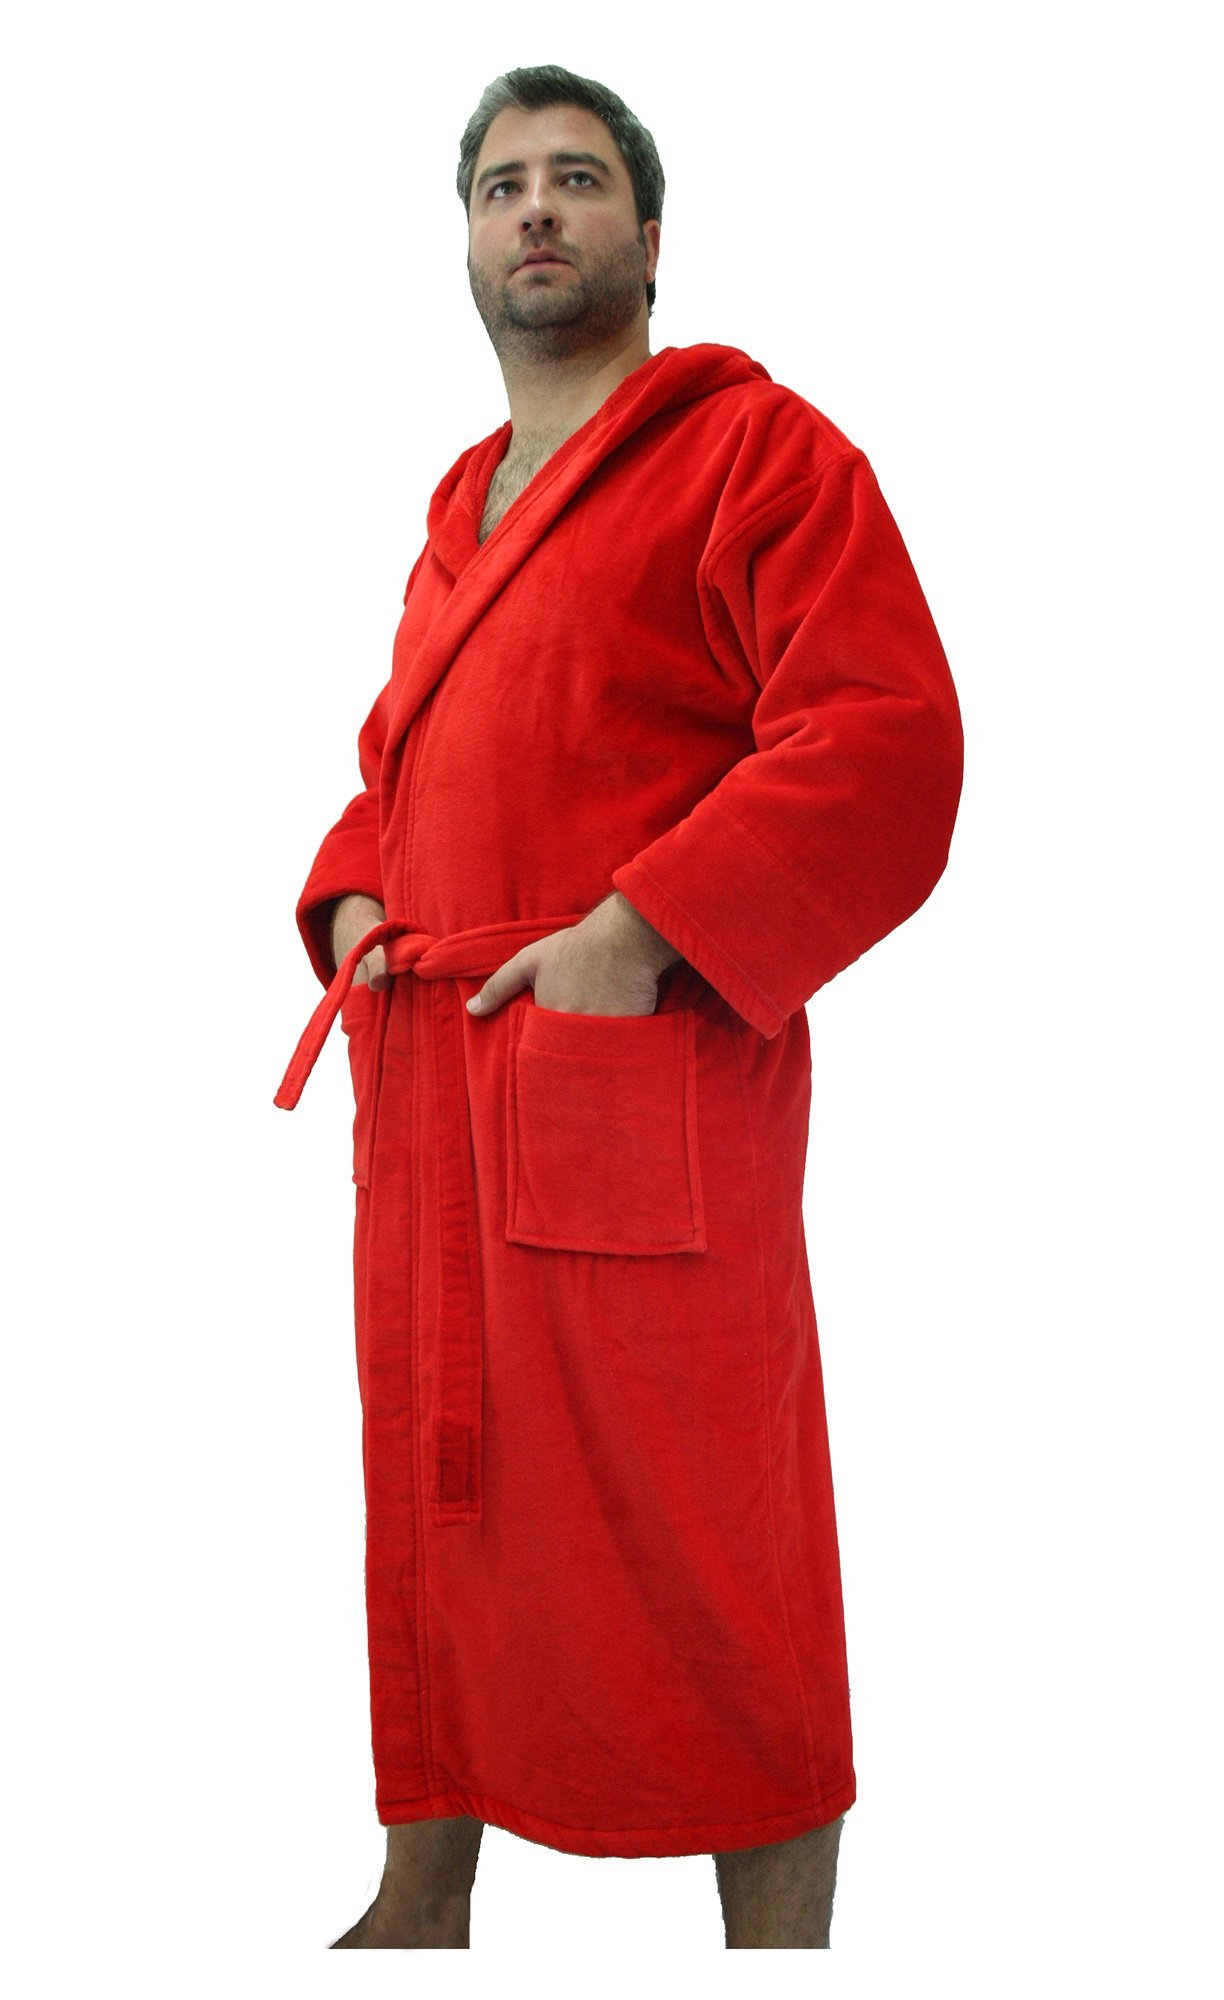 Custom Embroidered Robe for Adult,Cover Up, XXL Size, RED Color